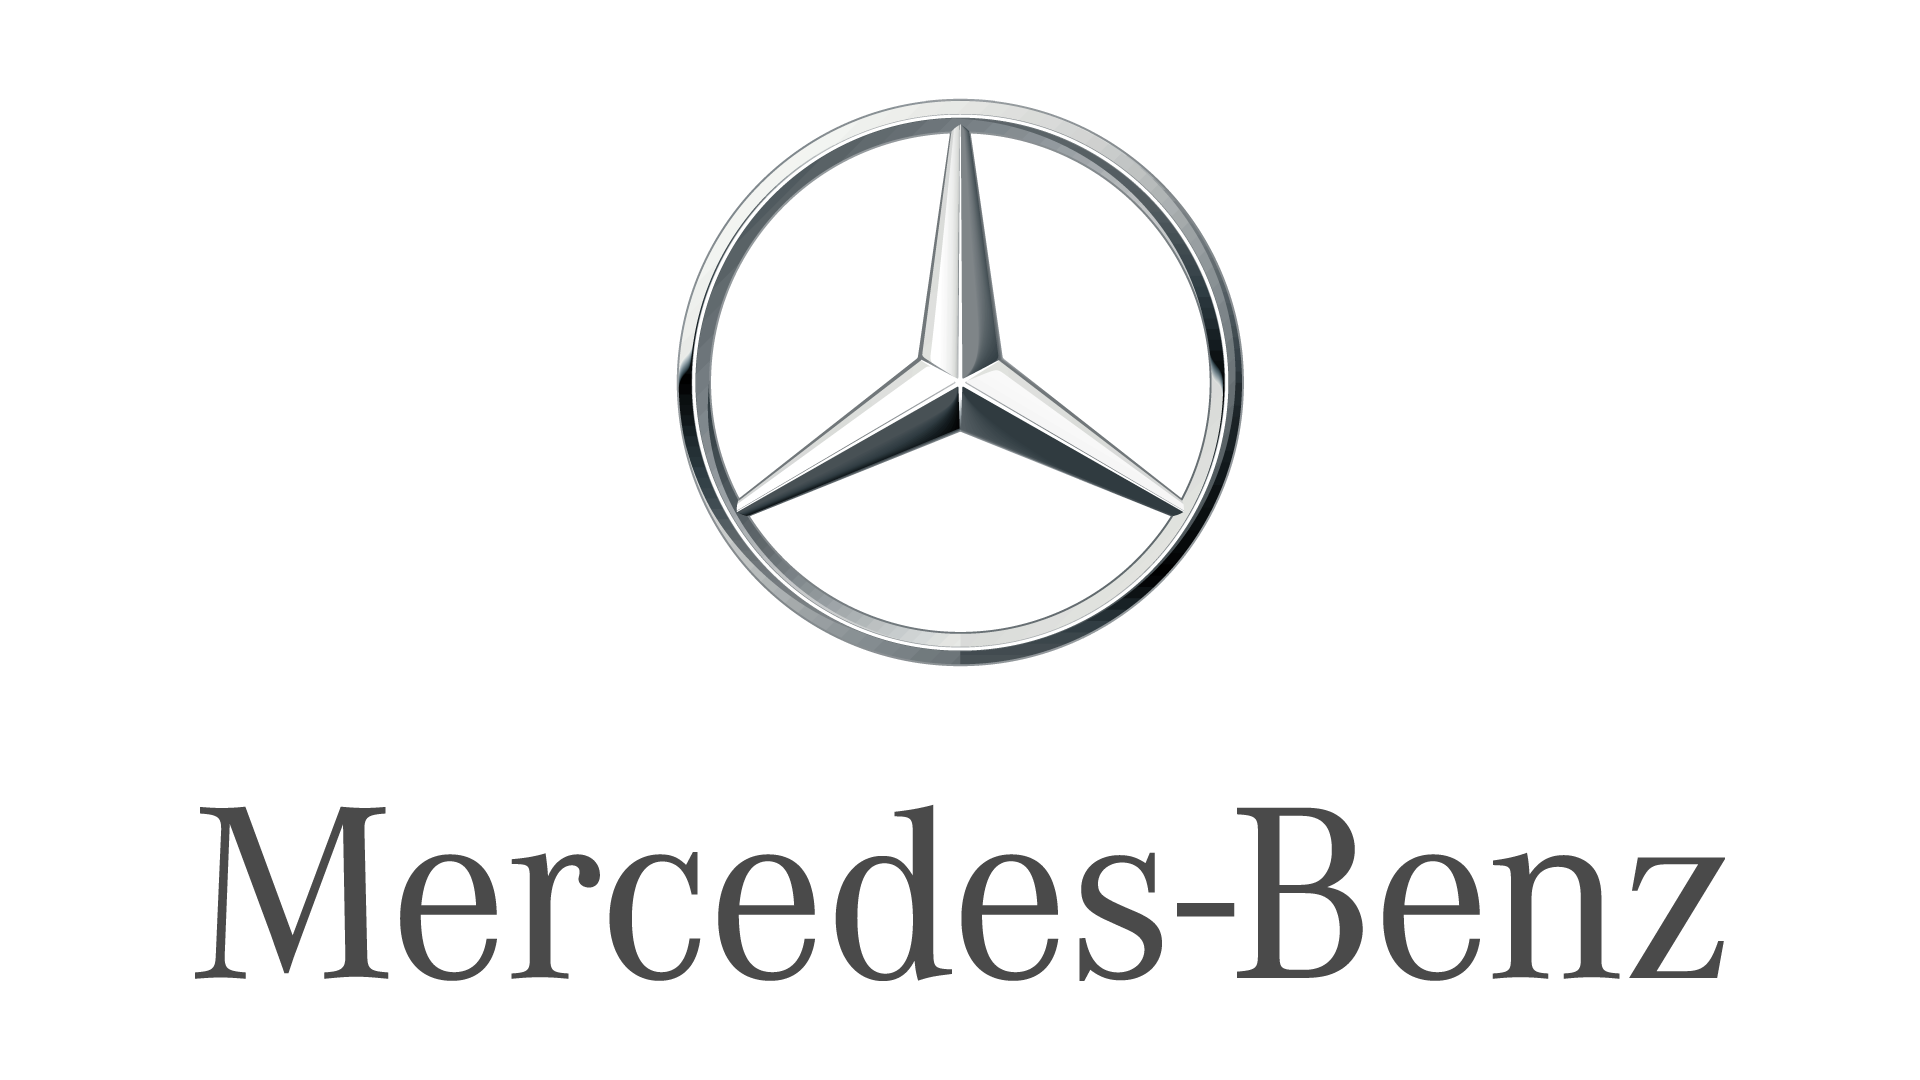 Mercedes Benz Logo Hd Png Meaning Information